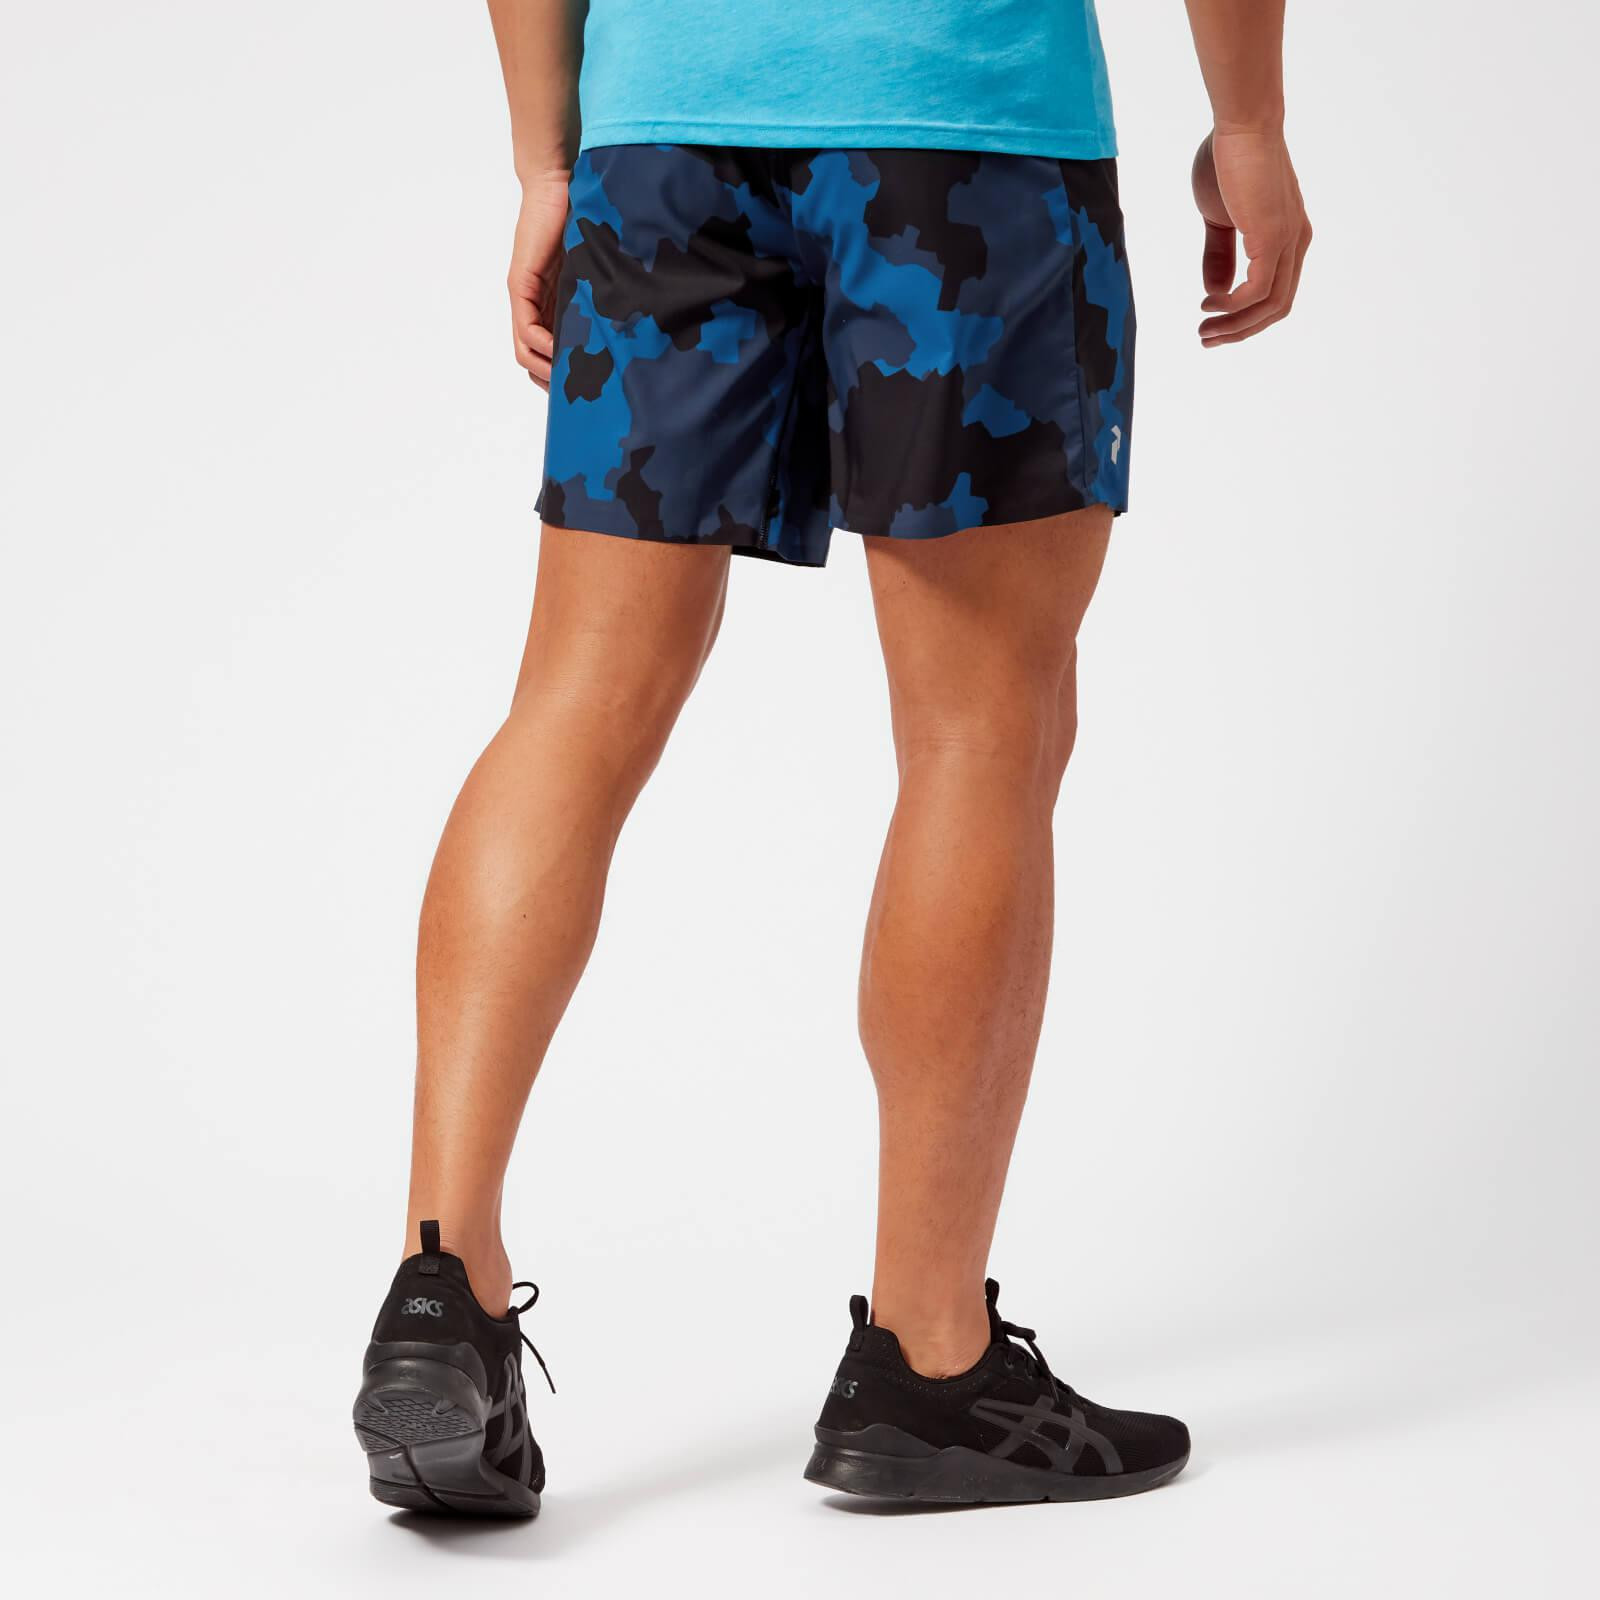 078ea5cfcd Peak Performance Fremont Printed Shorts in Blue for Men - Lyst